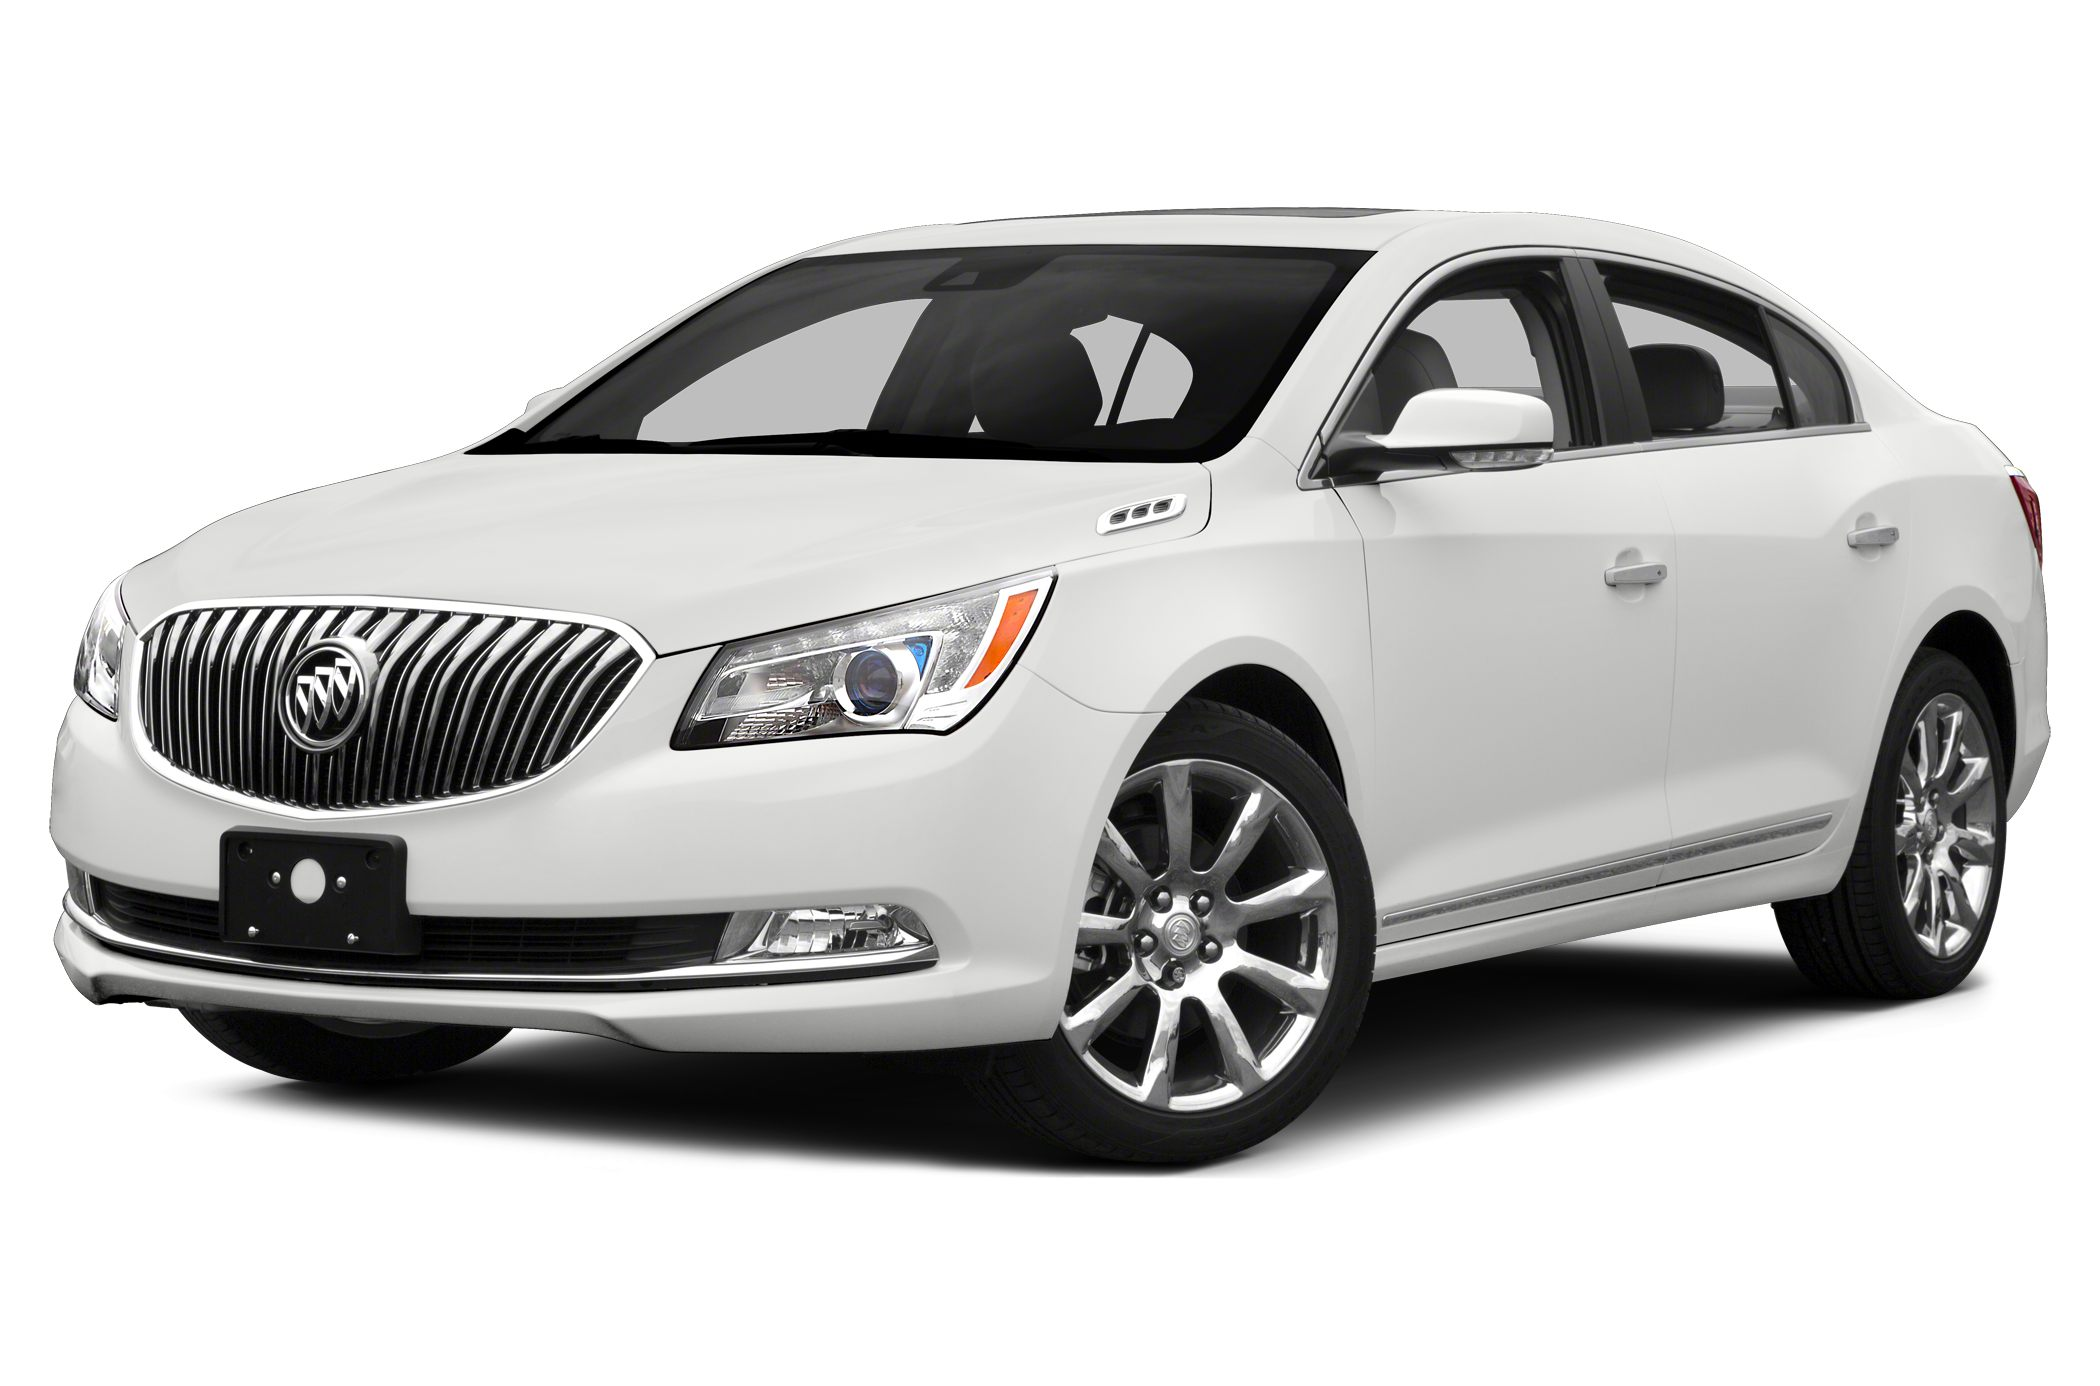 2015 Buick LaCrosse Leather Sedan for sale in Billings for $36,650 with 0 miles